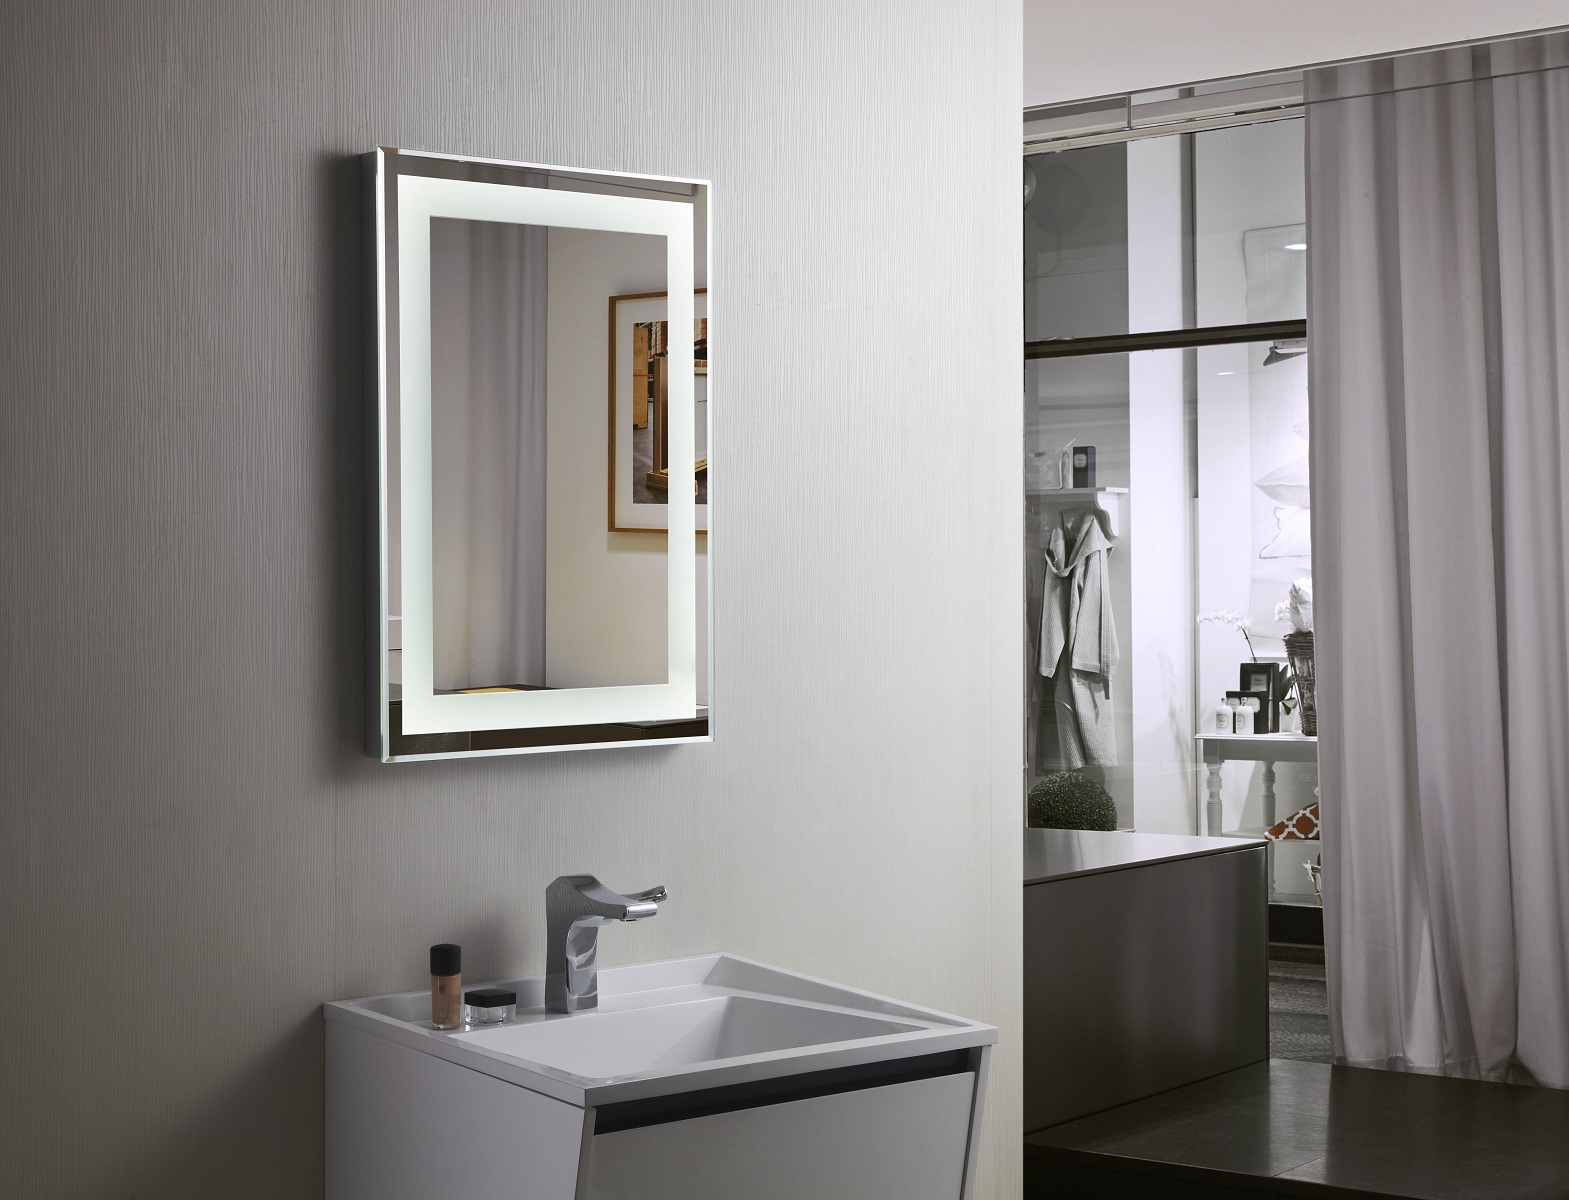 budapest lighted vanity mirror led bathroom mirror horizontal 19 7 x